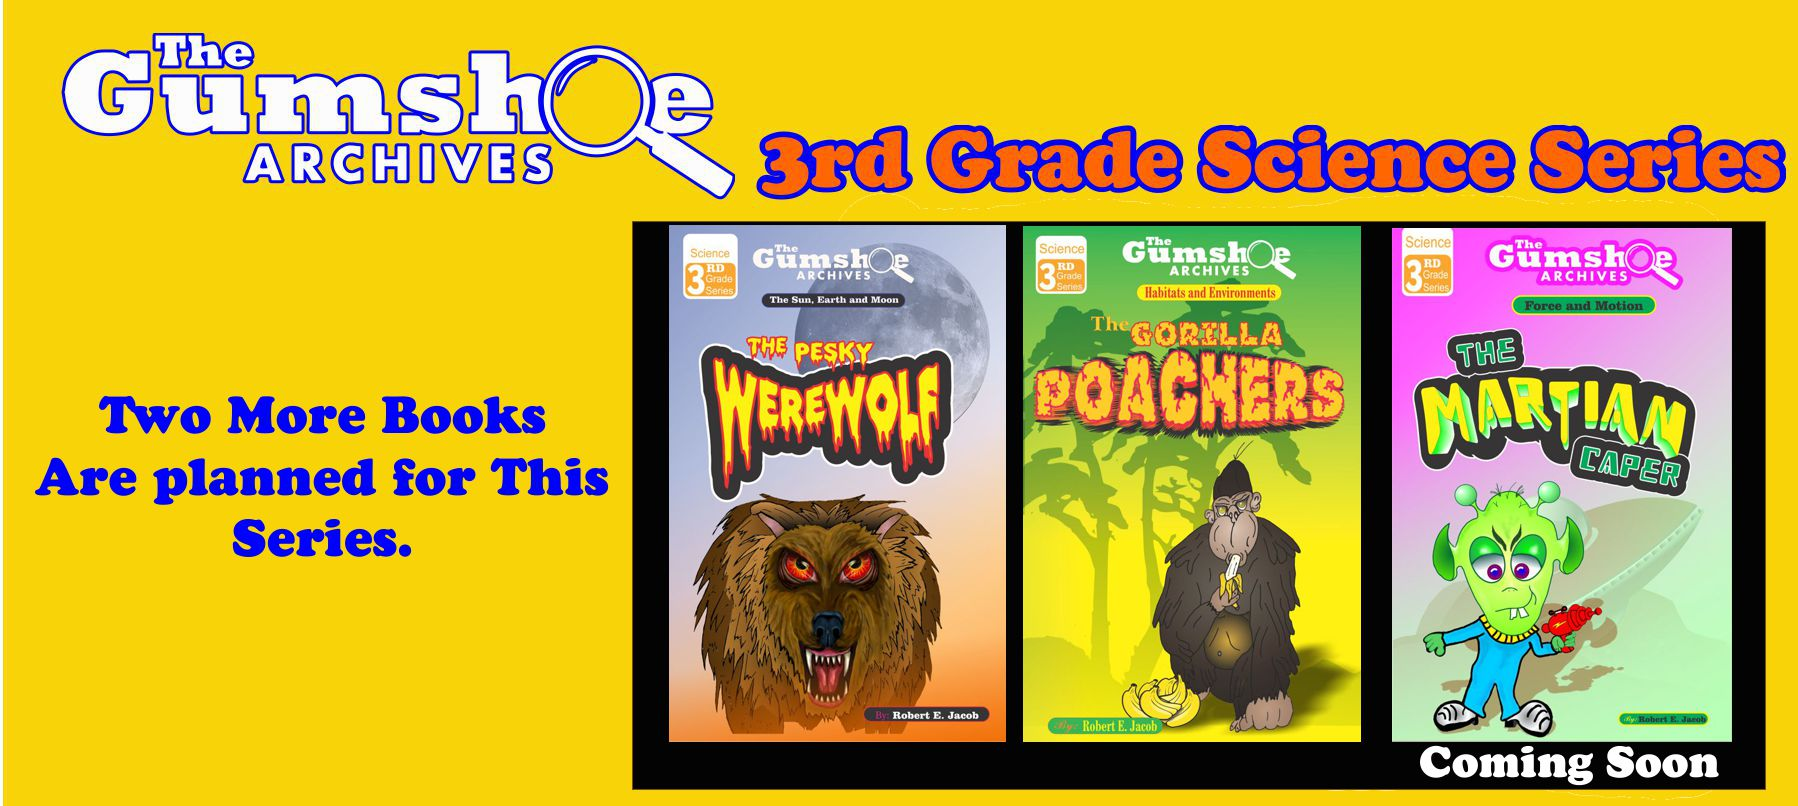 The Gumshoe Archives, Third grade series